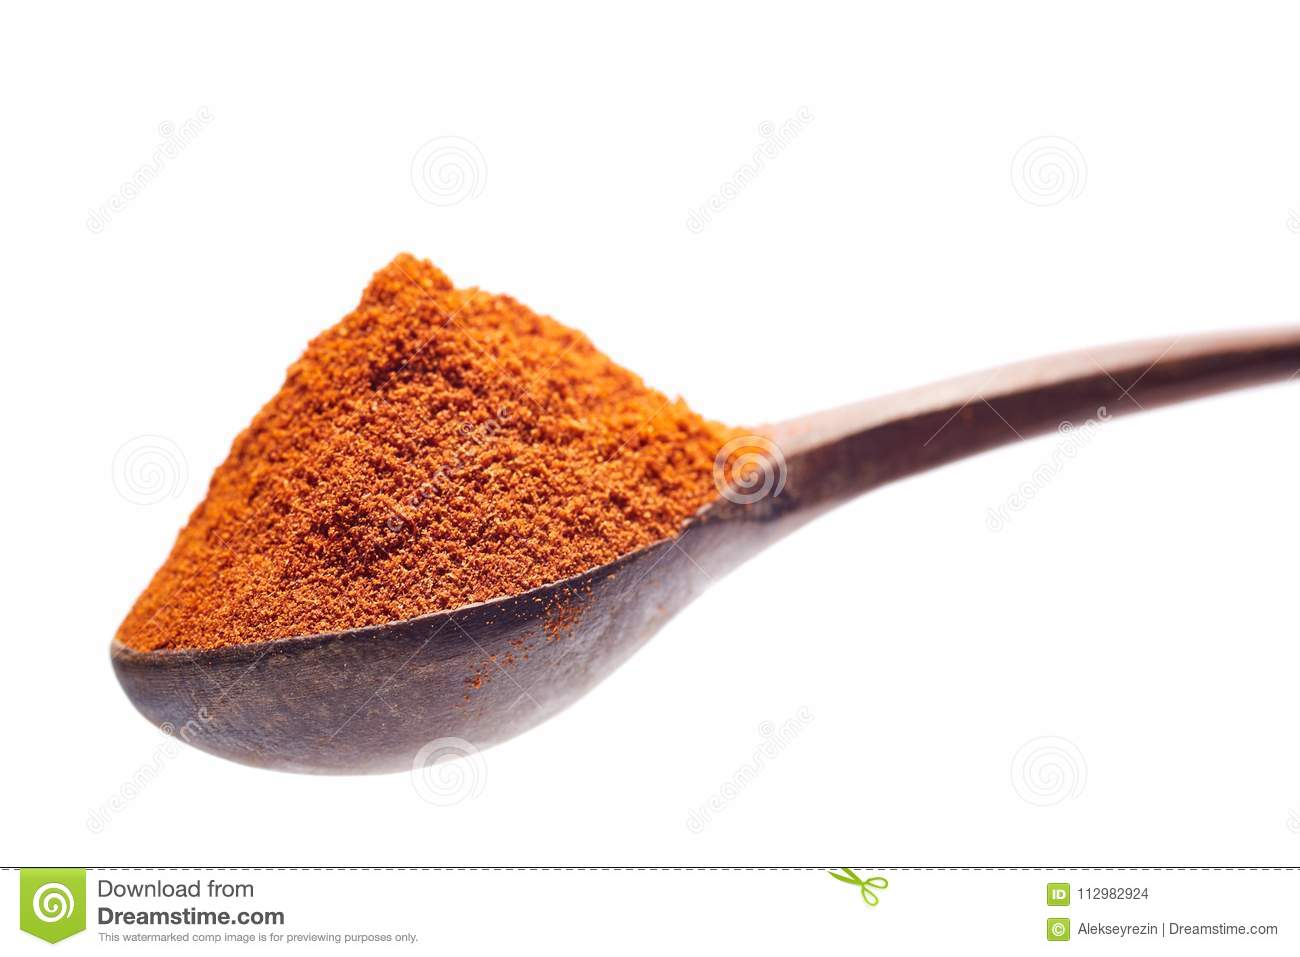 Shichimi pepper in Wooden spoon on white background,Blend of spices